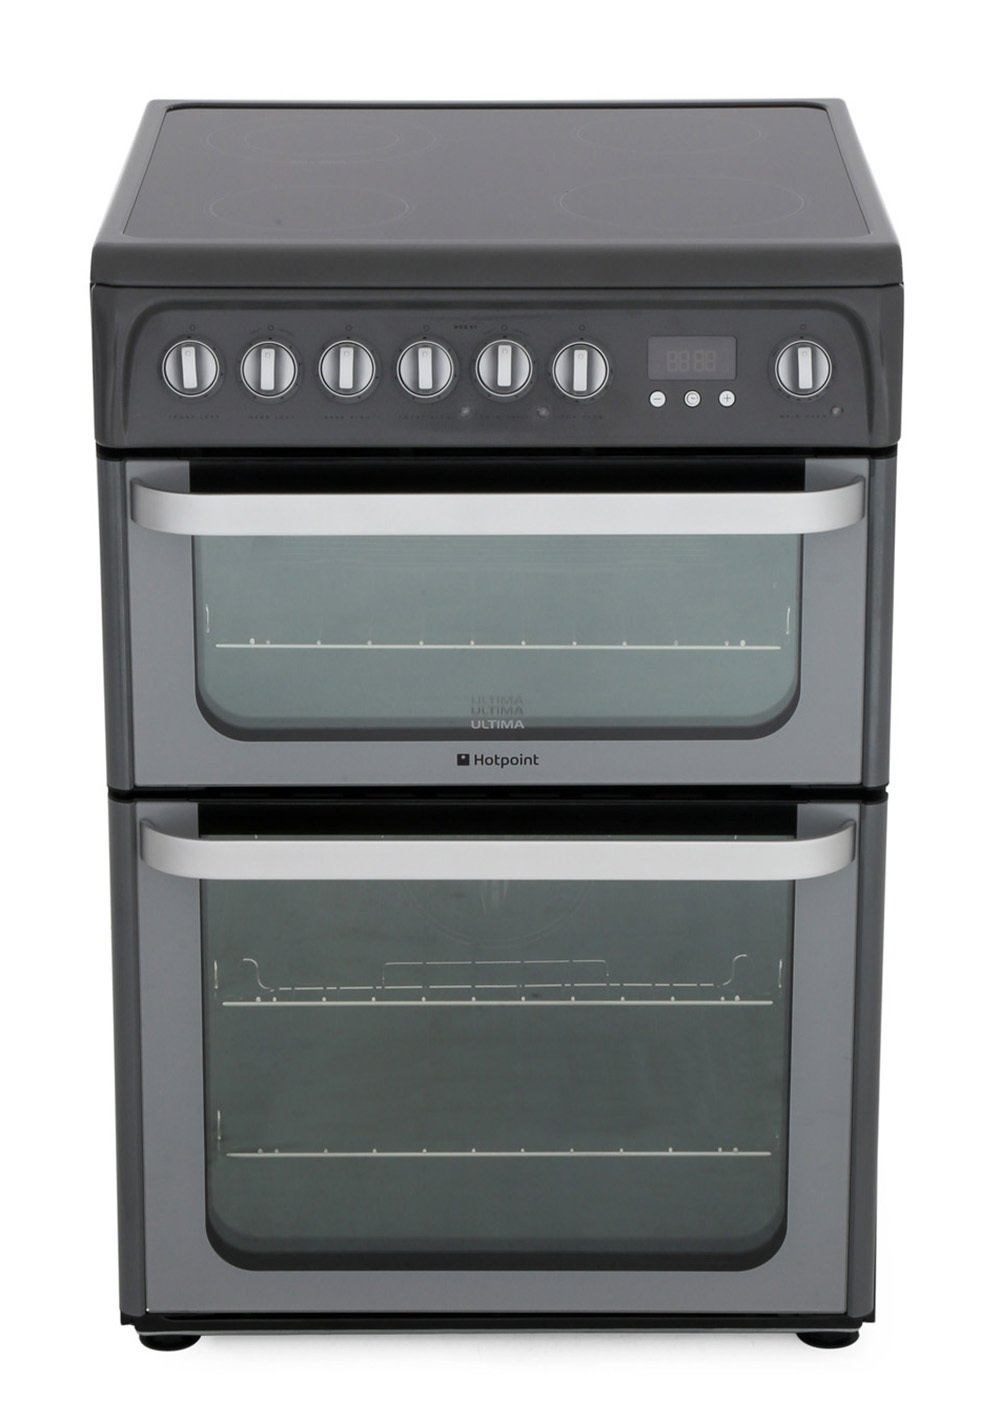 Hotpoint HUE61GS Ceramic Electric Cooker with Double Oven